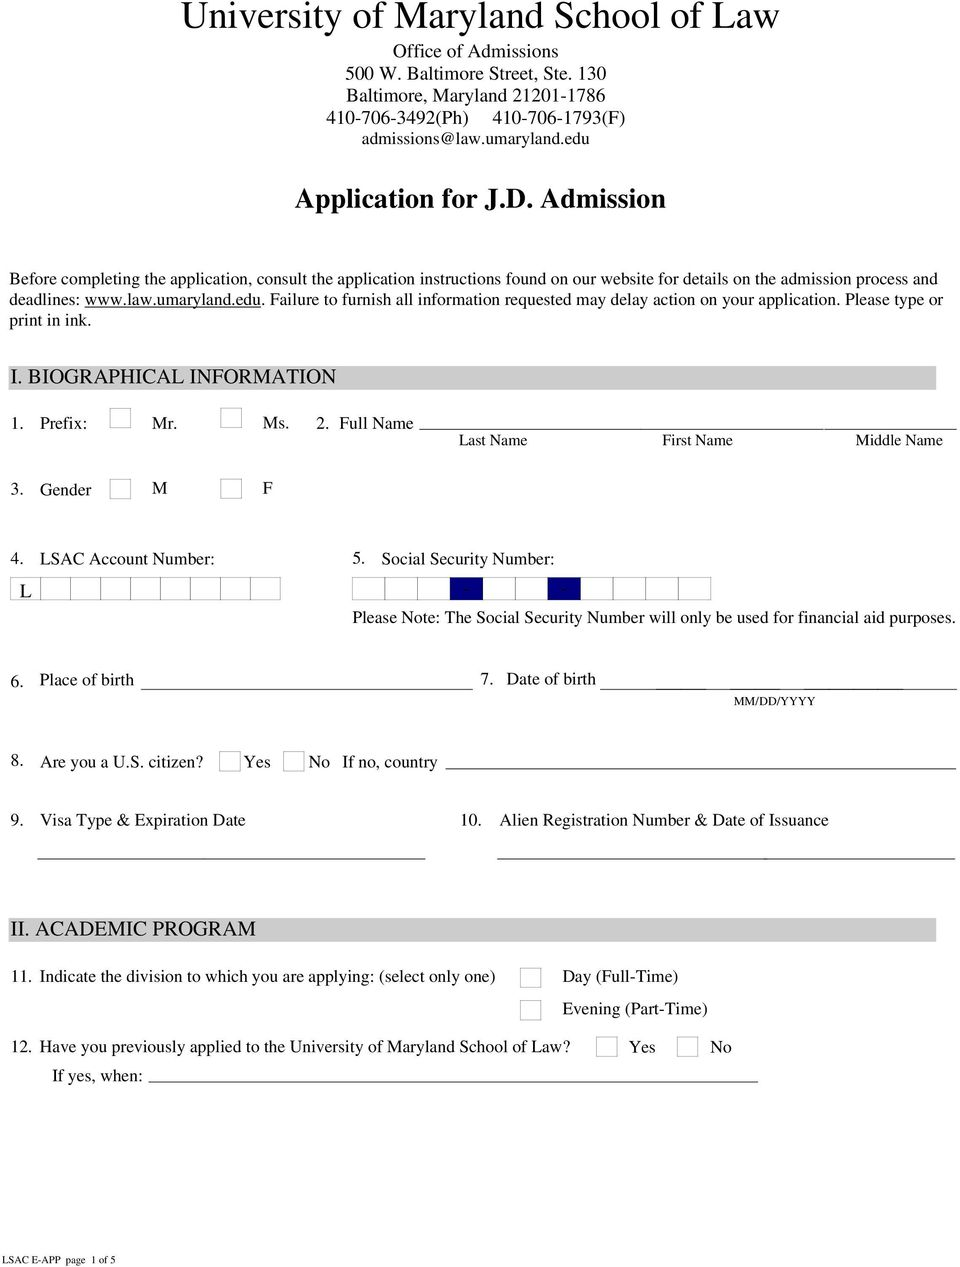 edu. Failure to furnish all information requested may delay action on your application. Please type or print in ink. I. BIOGRAPHICAL INFORMATION 1. Prefix: Mr. Ms. 2.